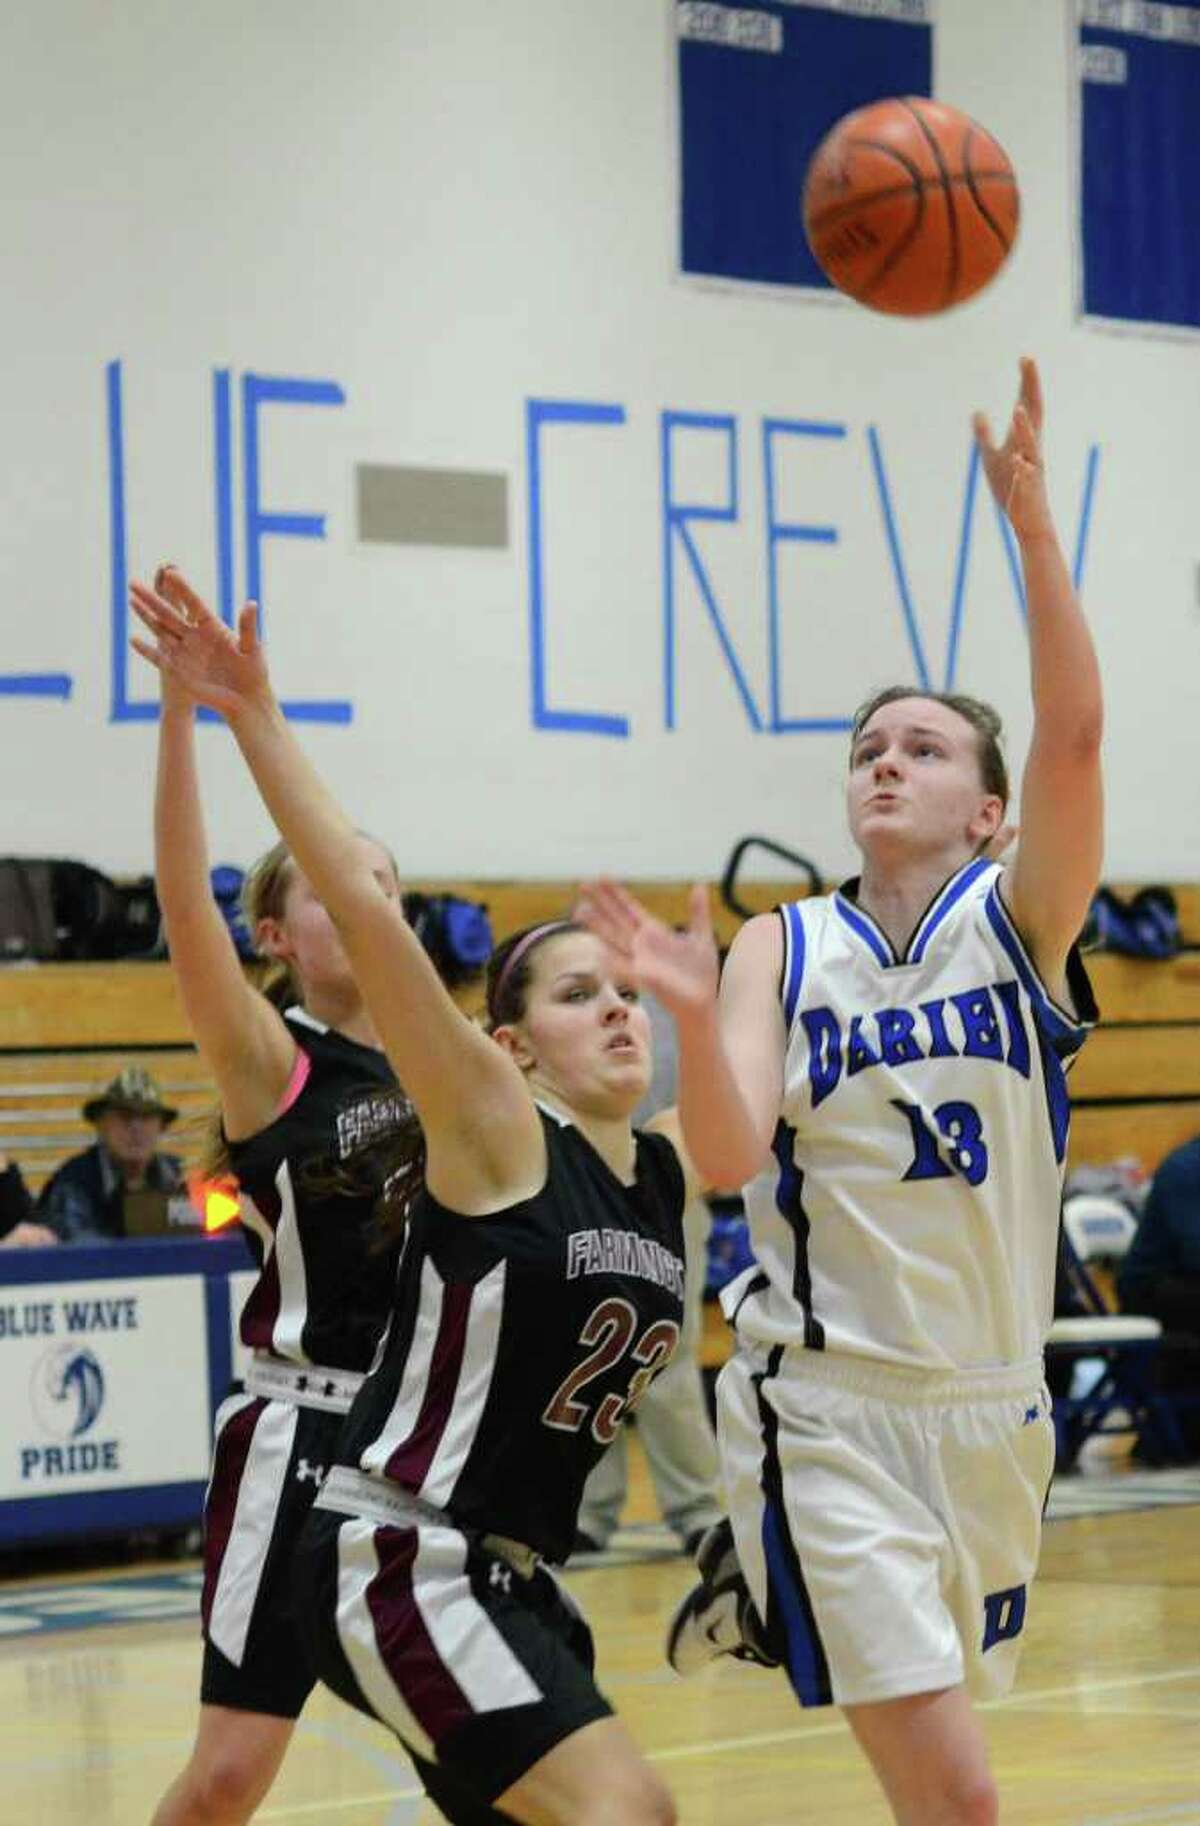 Darien's Kate Bushell (13) goes up for a shot against Farmington's Ugne Vaiciulyte (23) during the girls basketball game at Darien High School on Tuesday, Feb. 28, 2012.